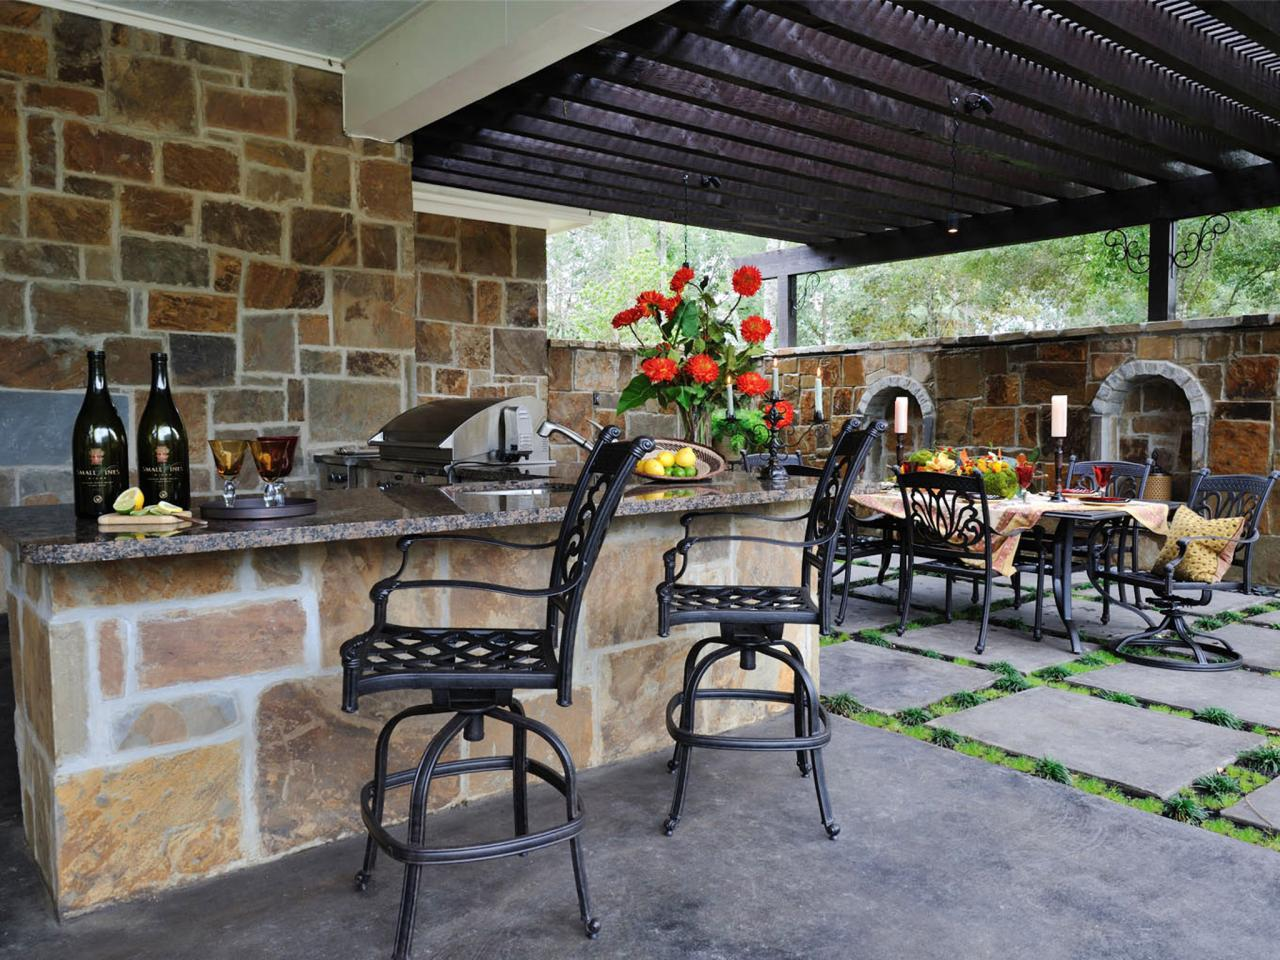 Building an Outdoor Kitchen: Pictures & Ideas From HGTV | HGTV on covered outdoor cooking, covered terrace ideas, covered outdoor fireplaces, covered grill ideas, covered deck with kitchen, covered outdoor chairs, covered hot tub ideas, covered pergola ideas, covered patio designs, covered bbq ideas, covered privacy fence ideas, covered outdoor architecture, covered outdoor kitchens and patios, covered outdoor living rooms, covered backyard ideas, covered balcony ideas, covered fireplace ideas, cool outdoor bar ideas, rustic outdoor ideas, covered walkway ideas,